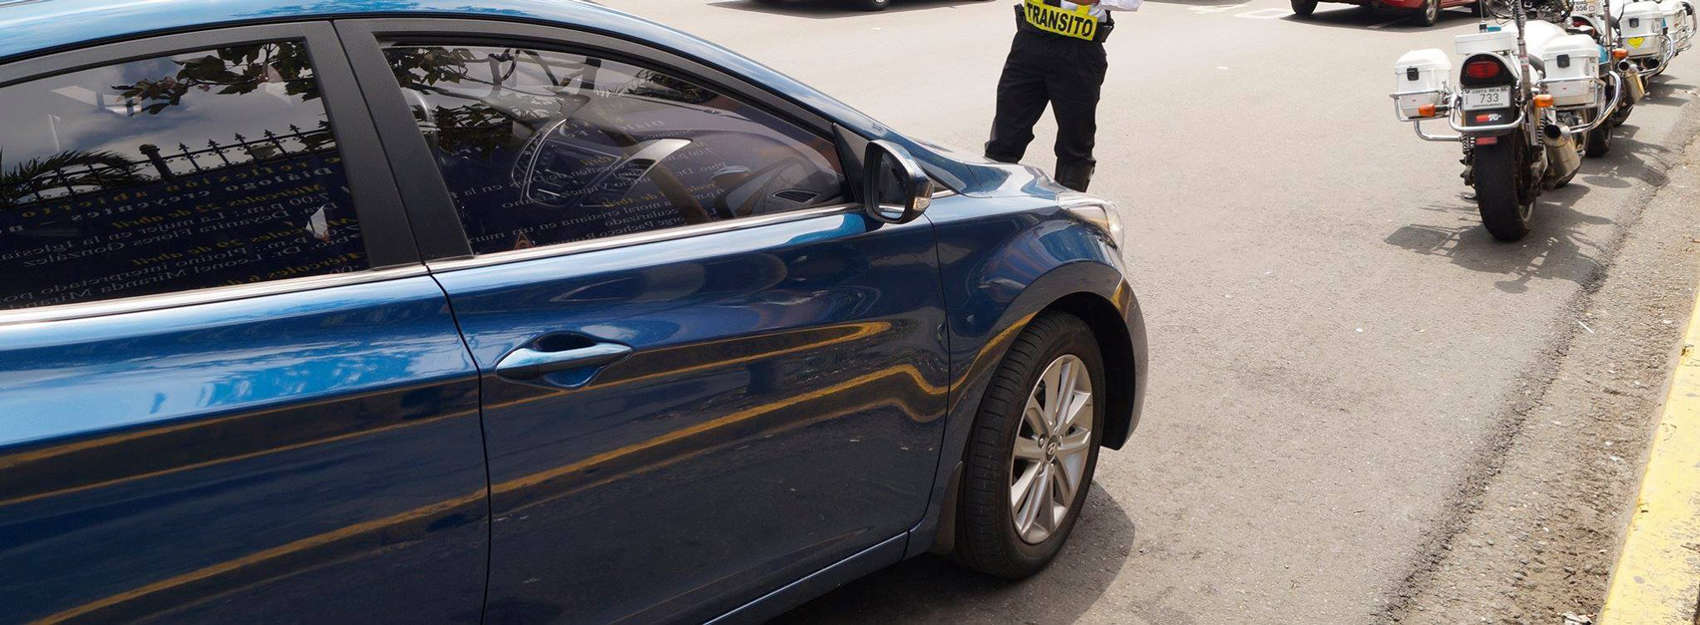 Uber Costa Rica: A police officer stops a vehicle.